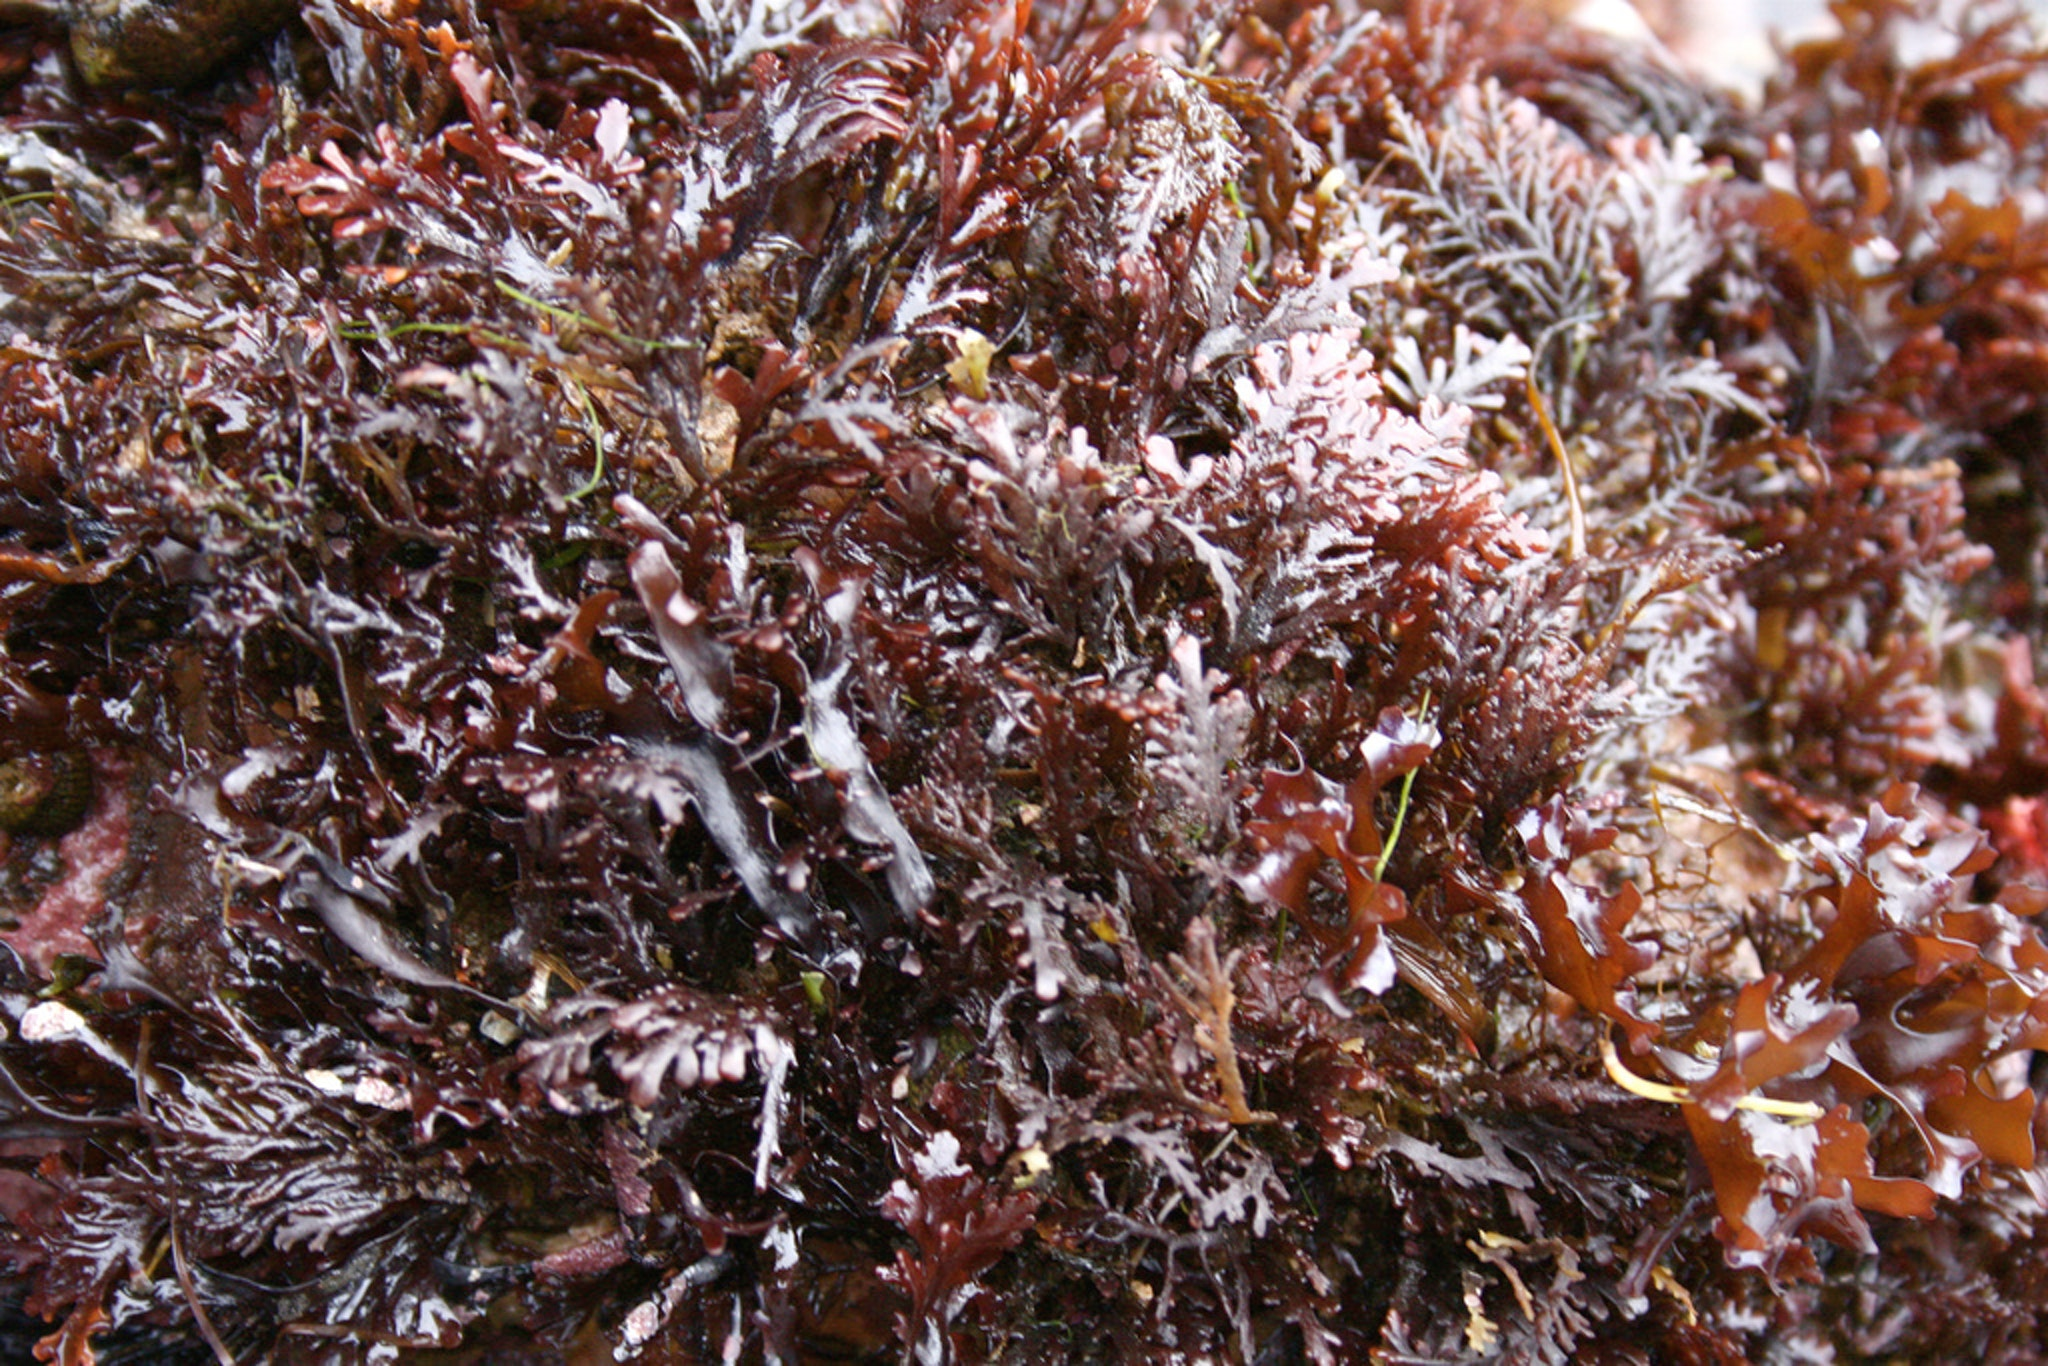 The feathery looking kelp is pepper dulse.